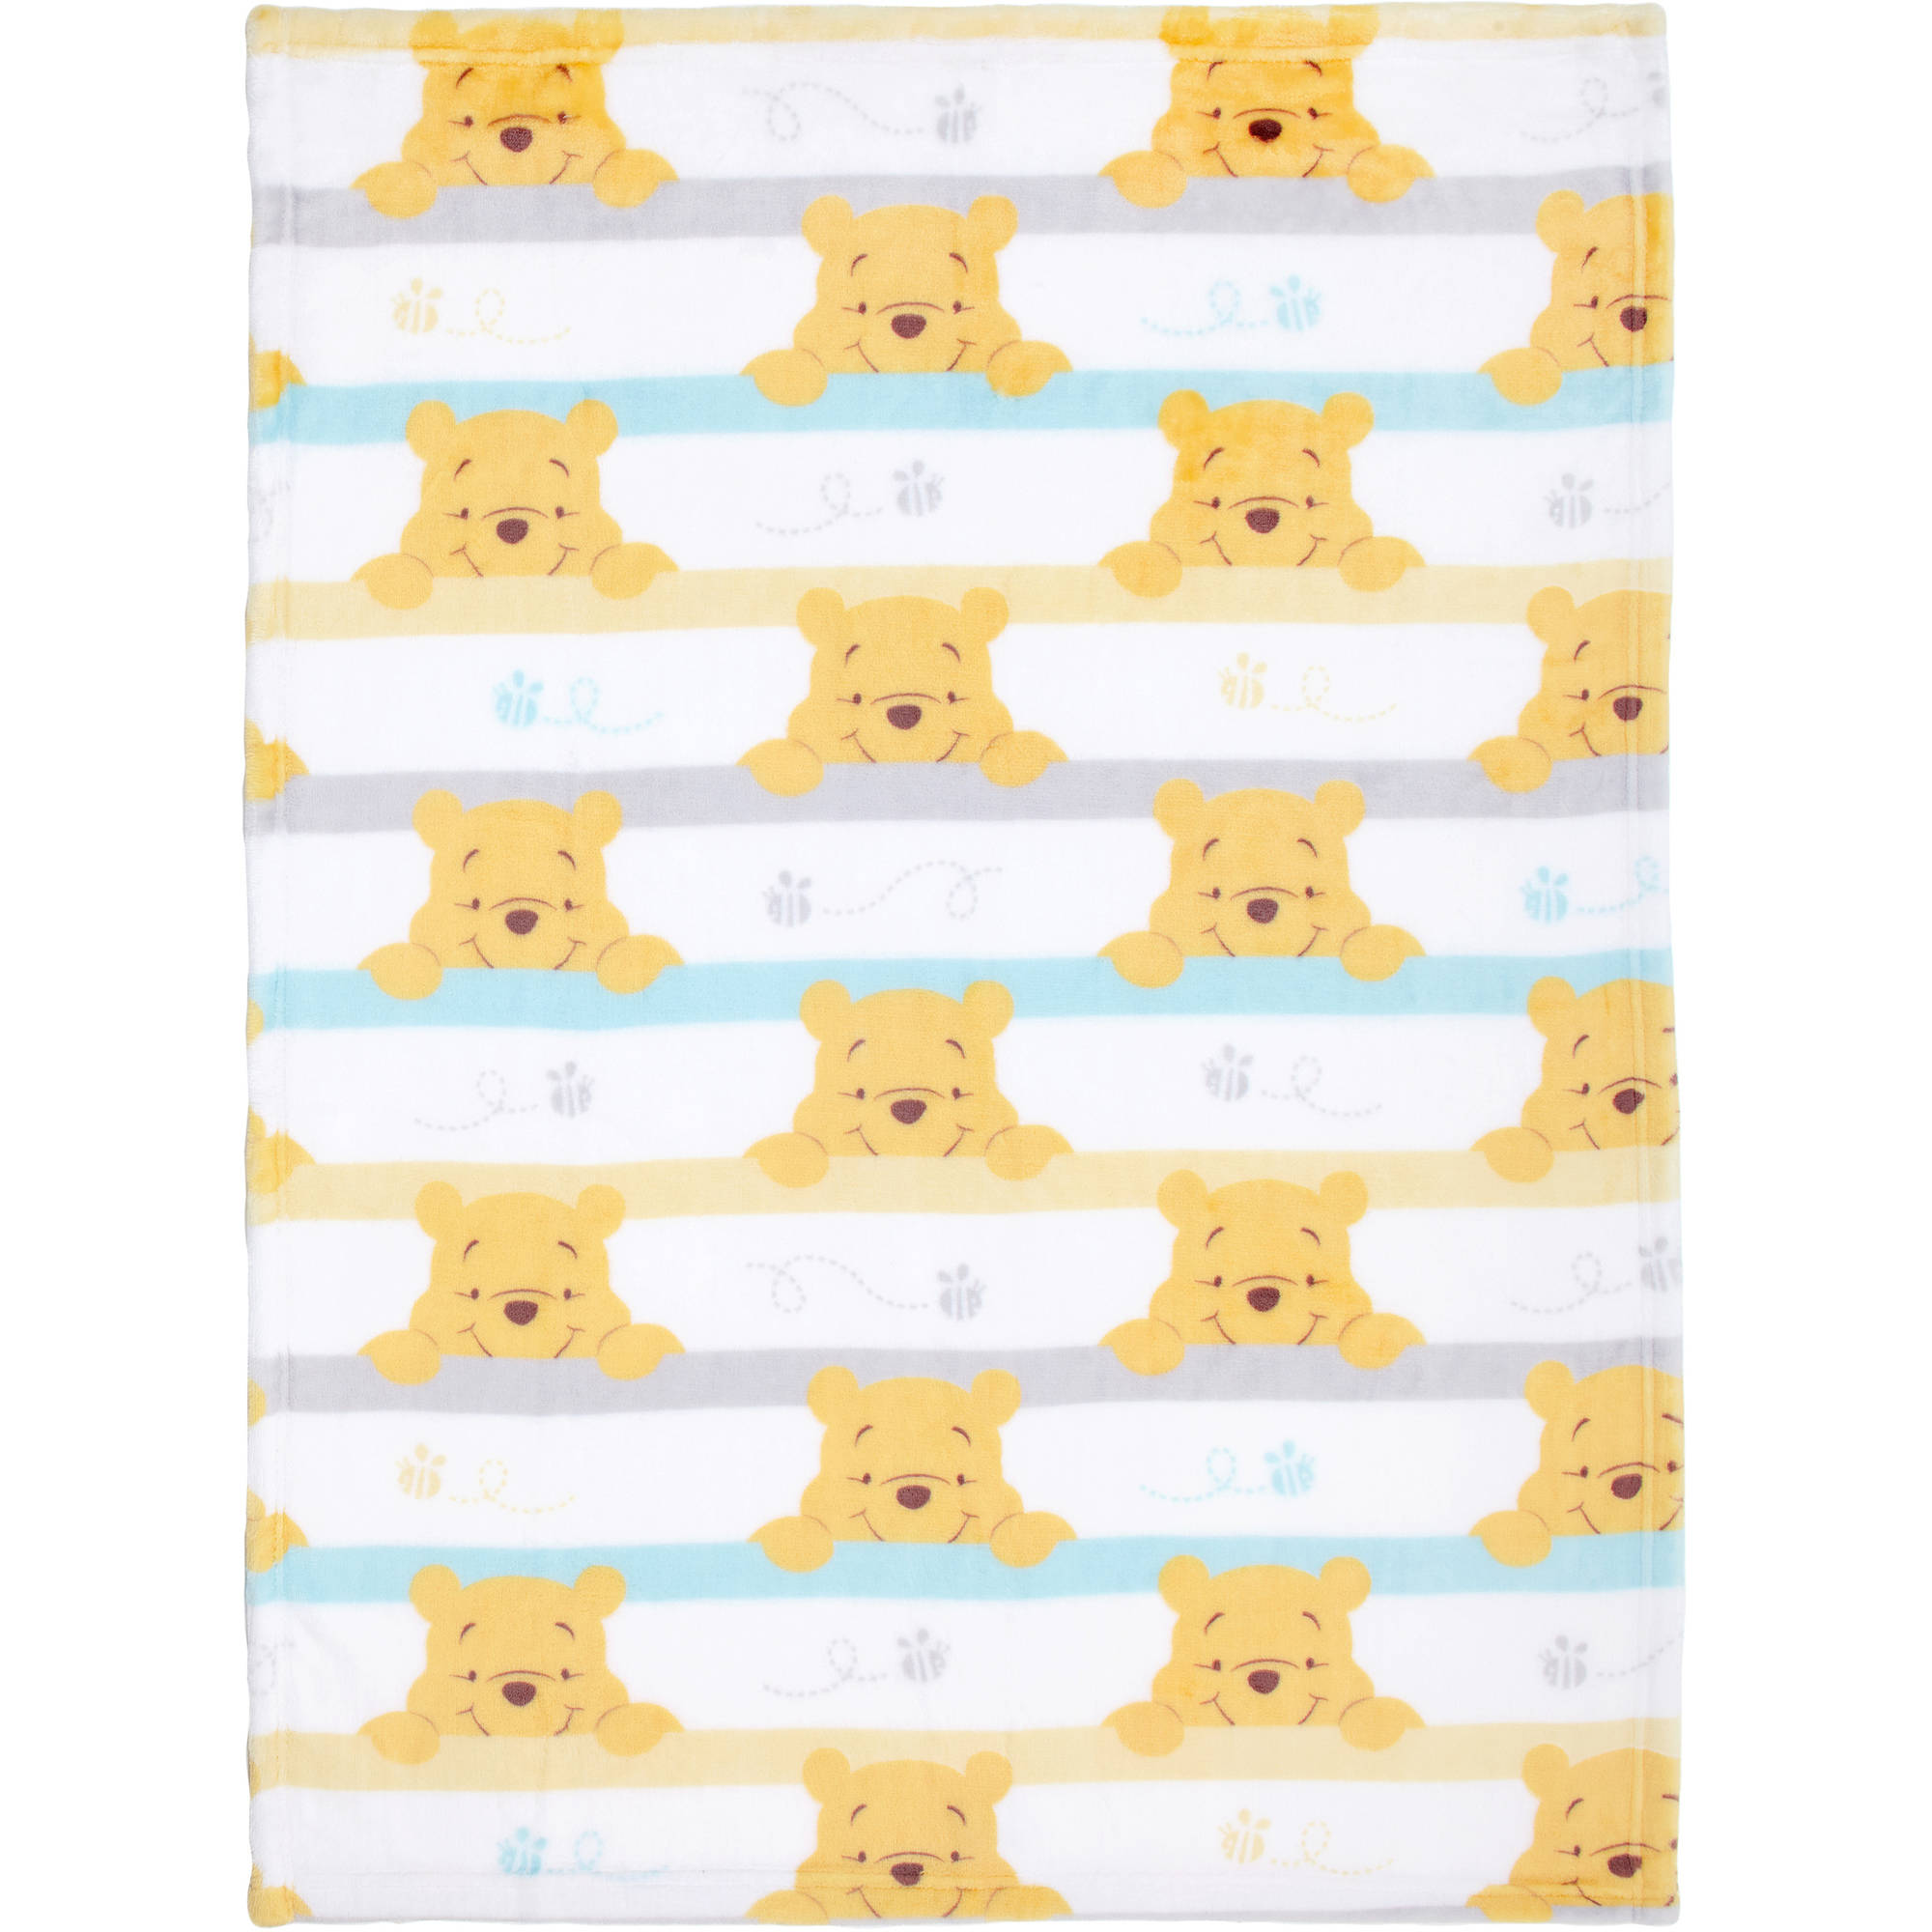 Disney Pooh Together Forever Fleece Blanket